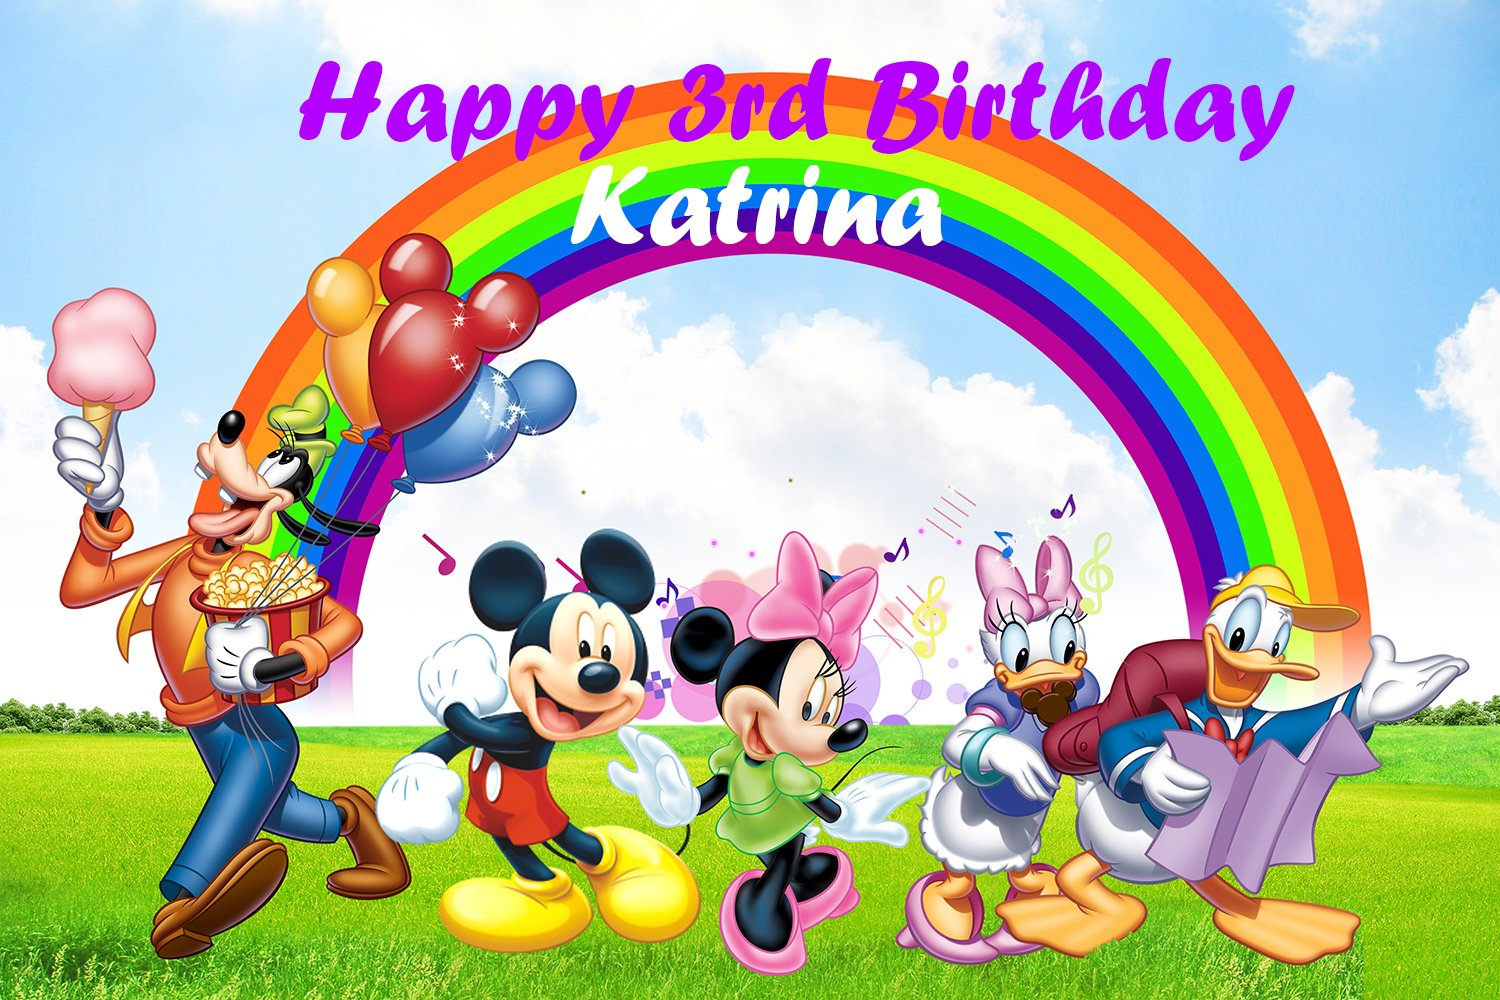 Personalized Mickey Mouse Backdrop - Disney custom birthday party decoration banner comic cartoon style rainbow outdoor - Printed Fabric Photography Background (P0176, 12' wide by 8' tall) by BestDrop